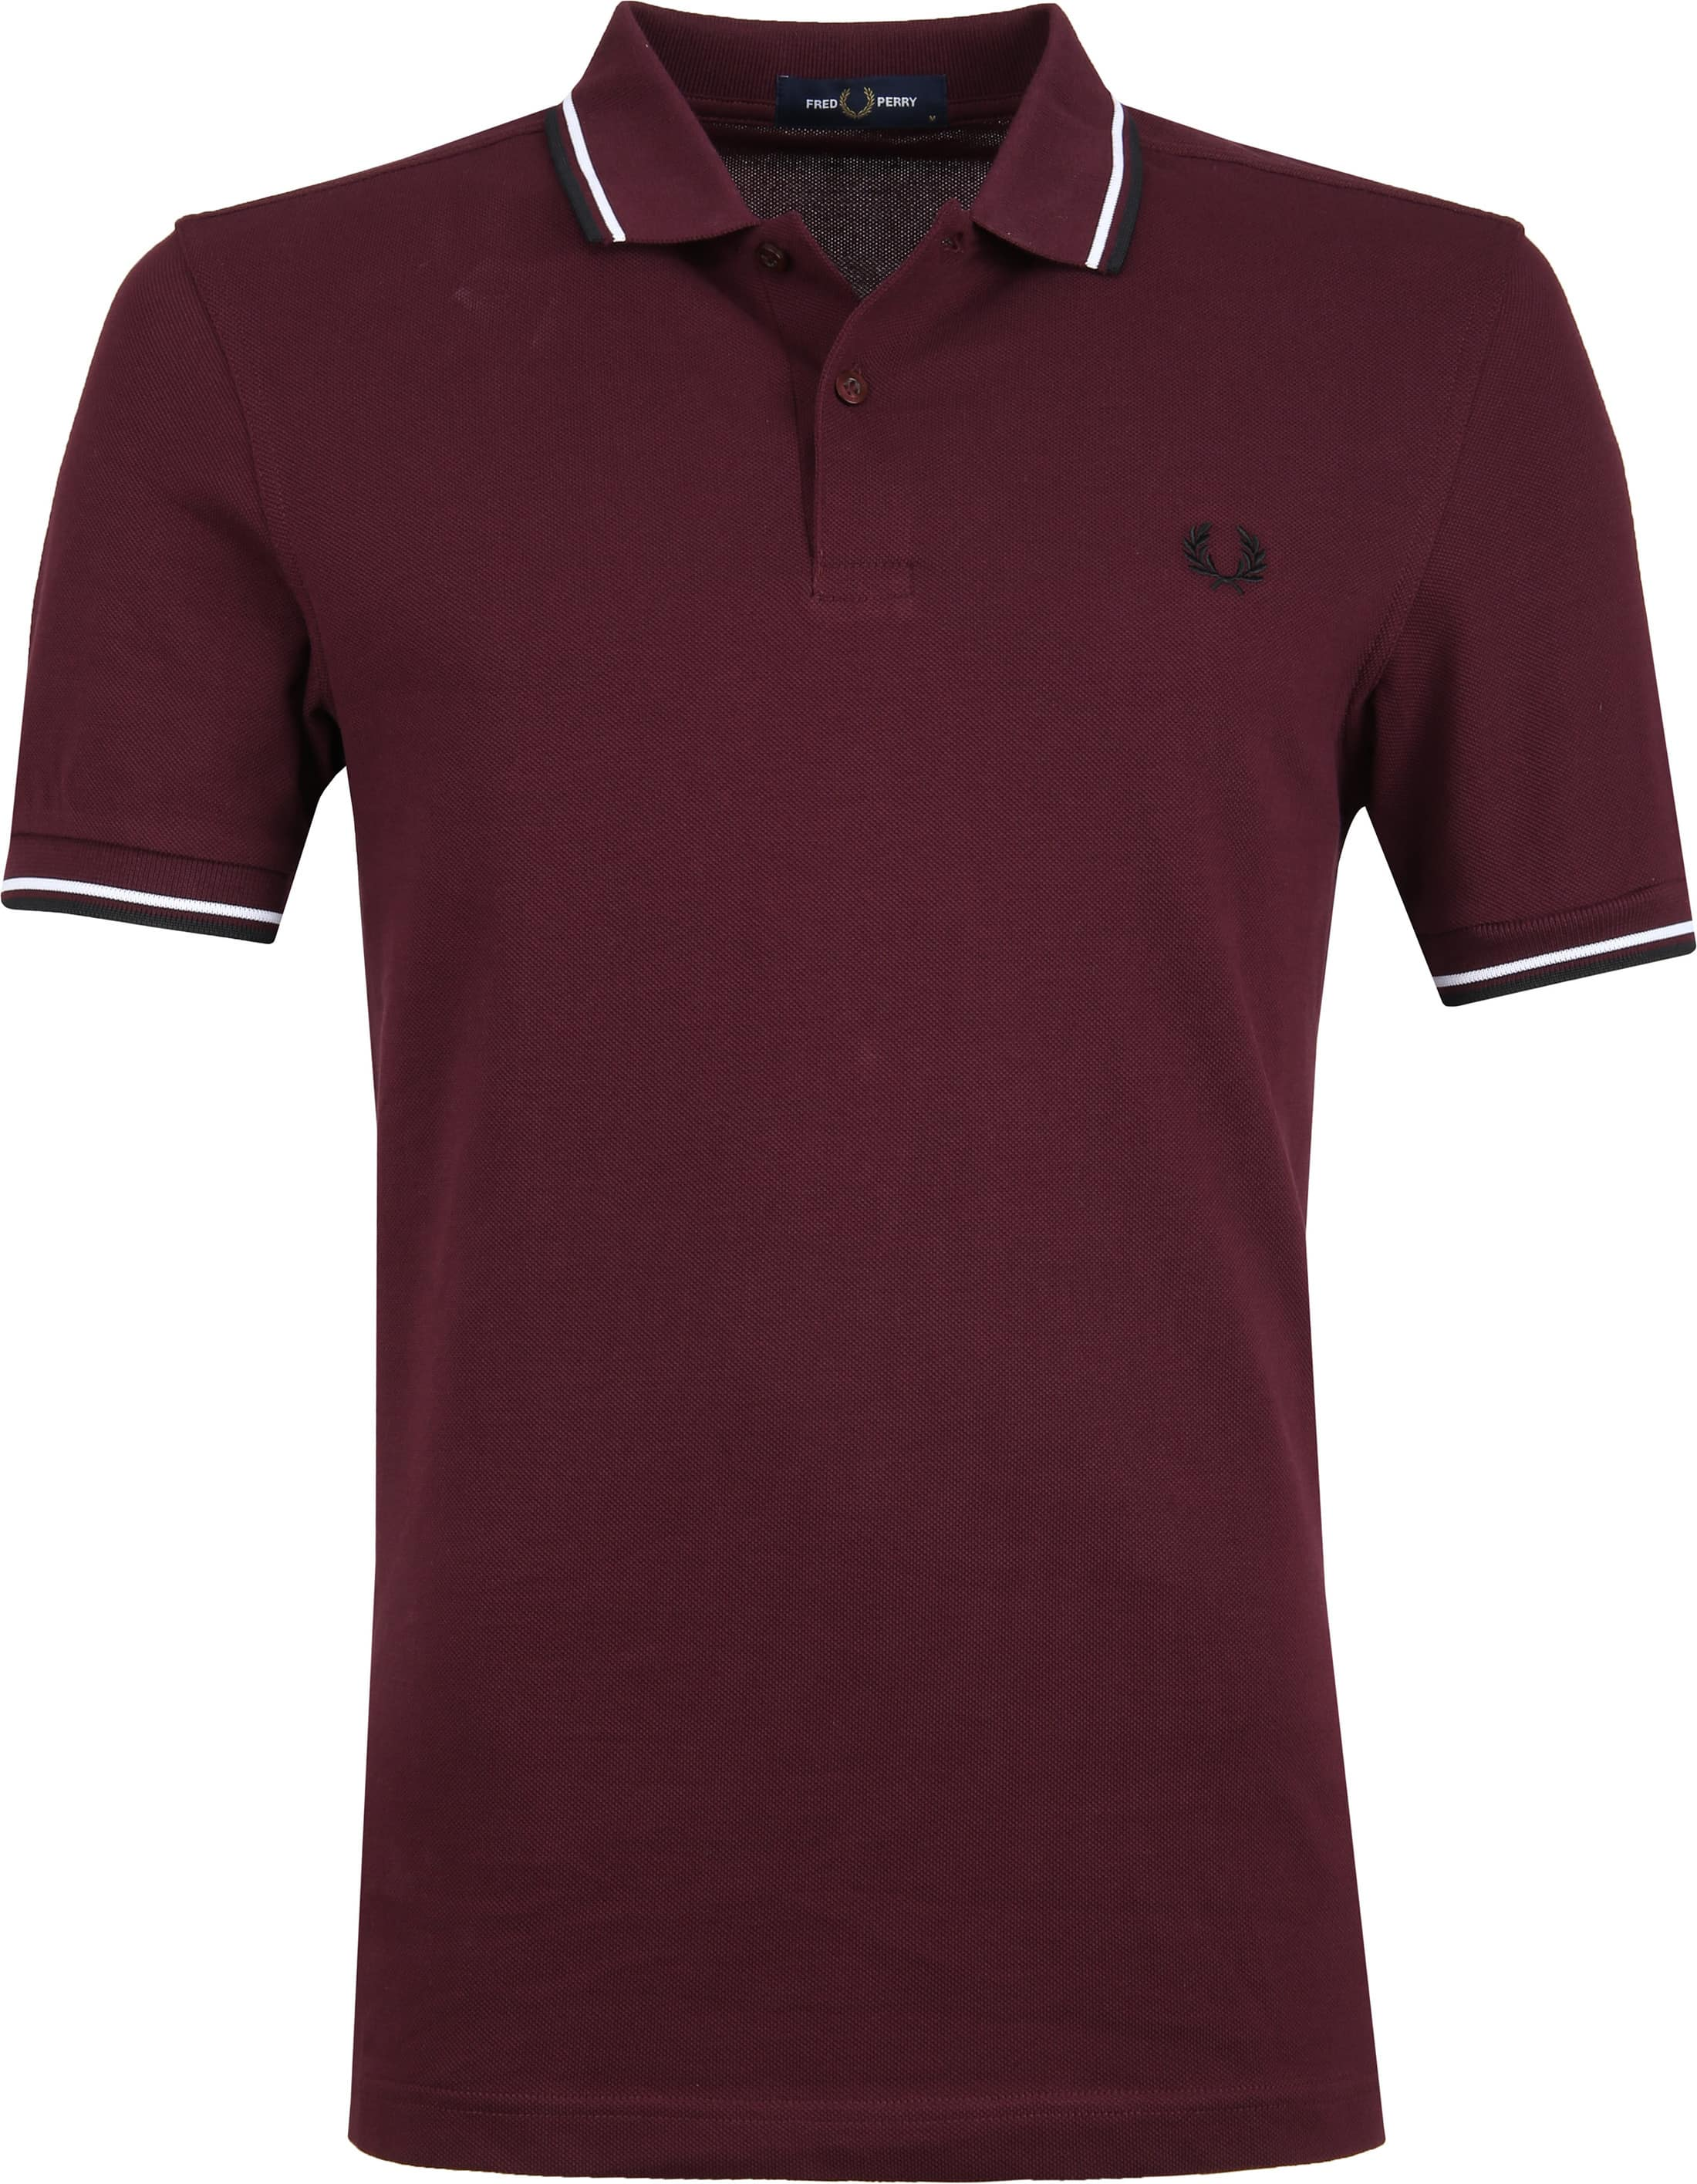 Fred Perry Poloshirt Bordeaux I74 photo 0